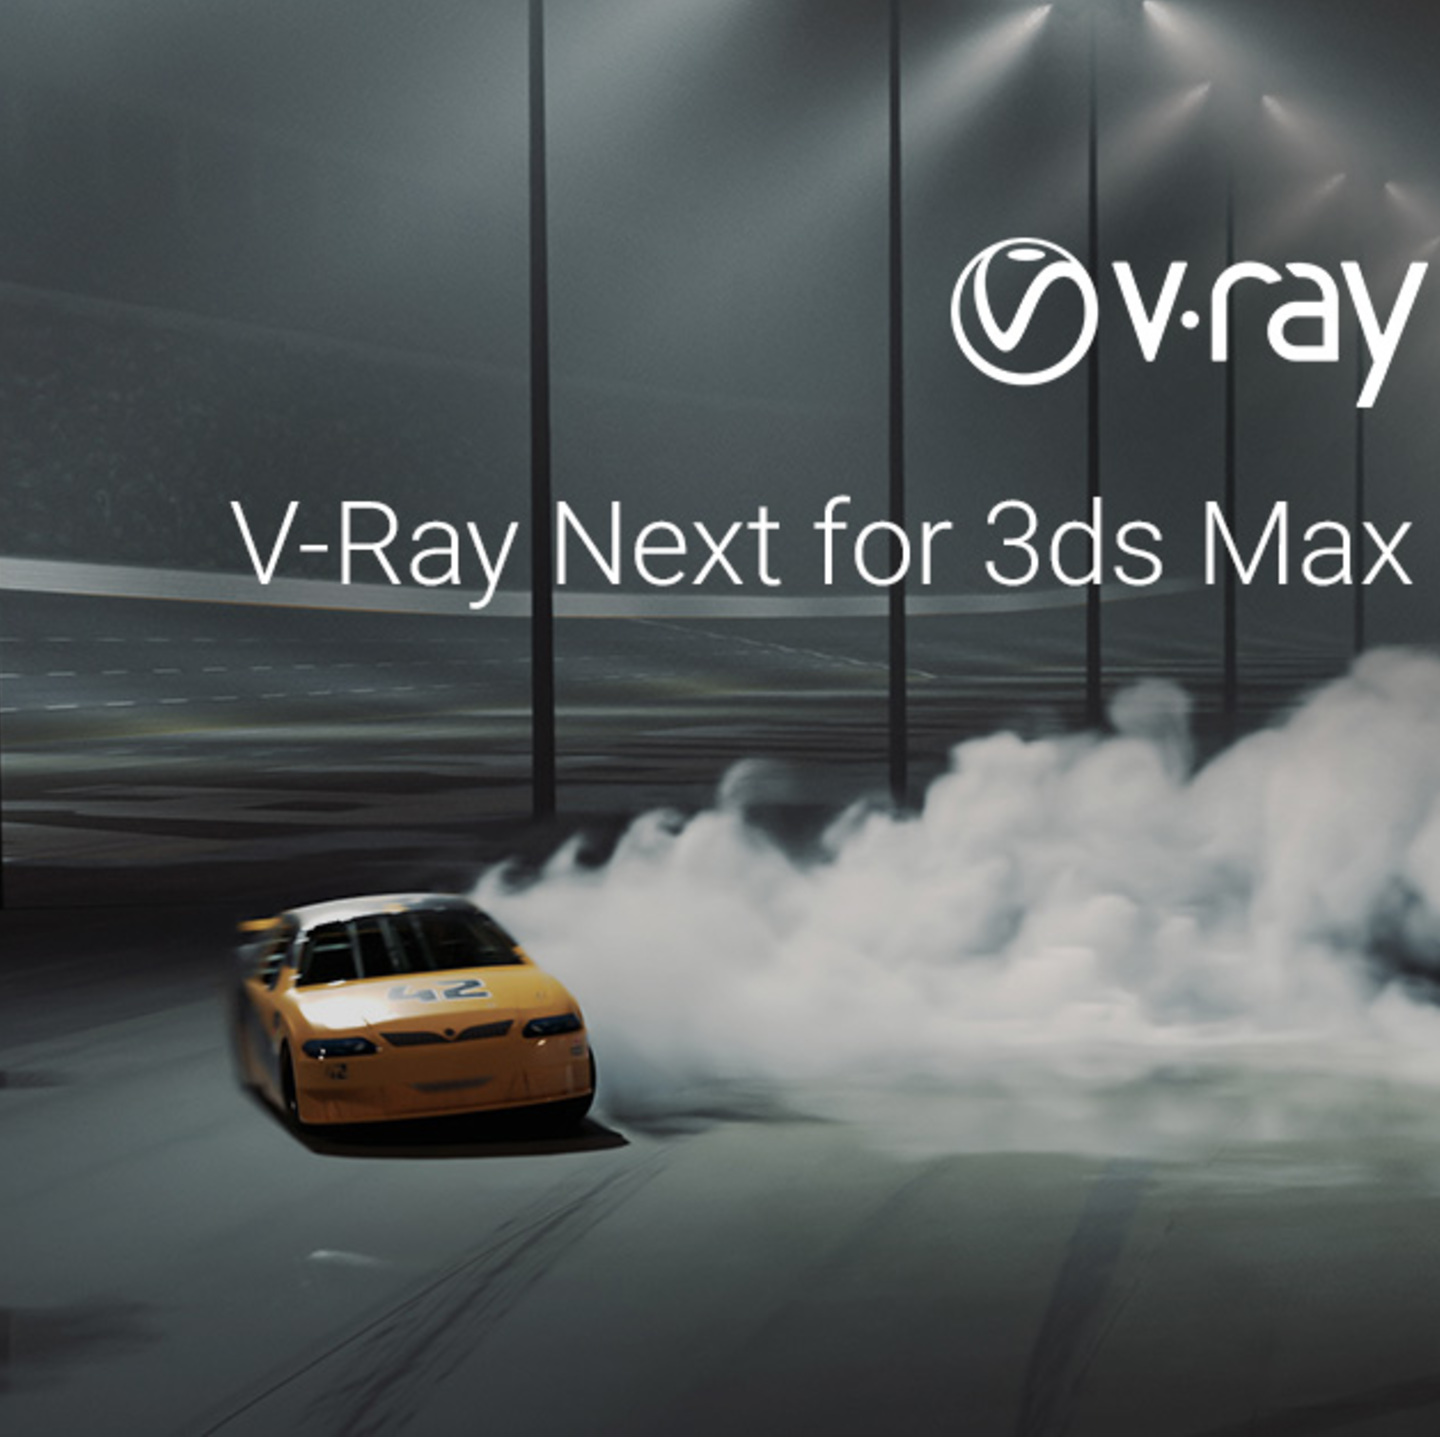 V-Ray Next for 3ds Max-Perpetual